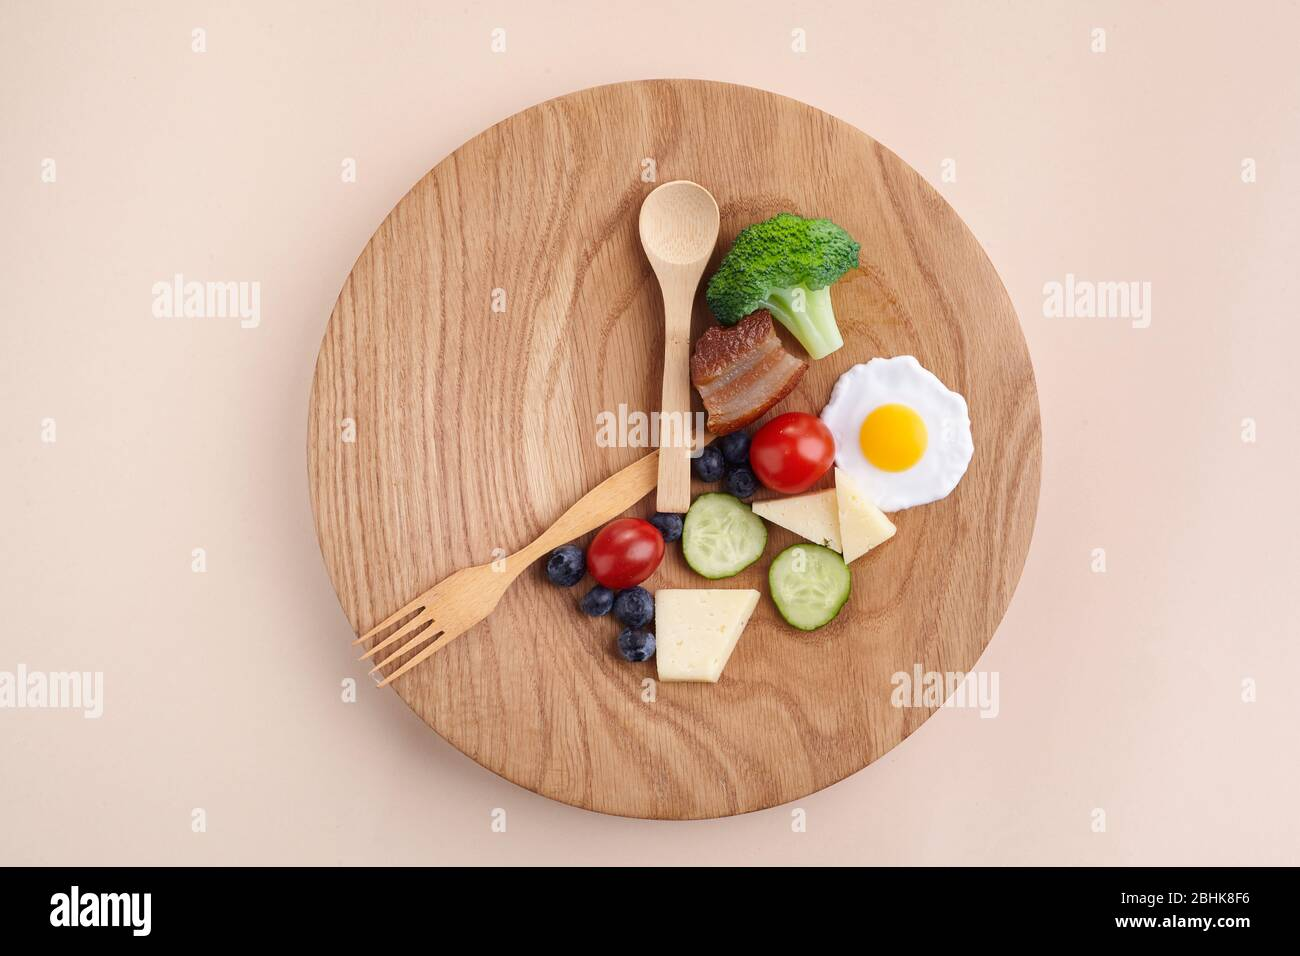 Intermittent fasting. Healthy breakfast, diet food concept. Organic meal. Fat loss concept. Weight loss. Stock Photo